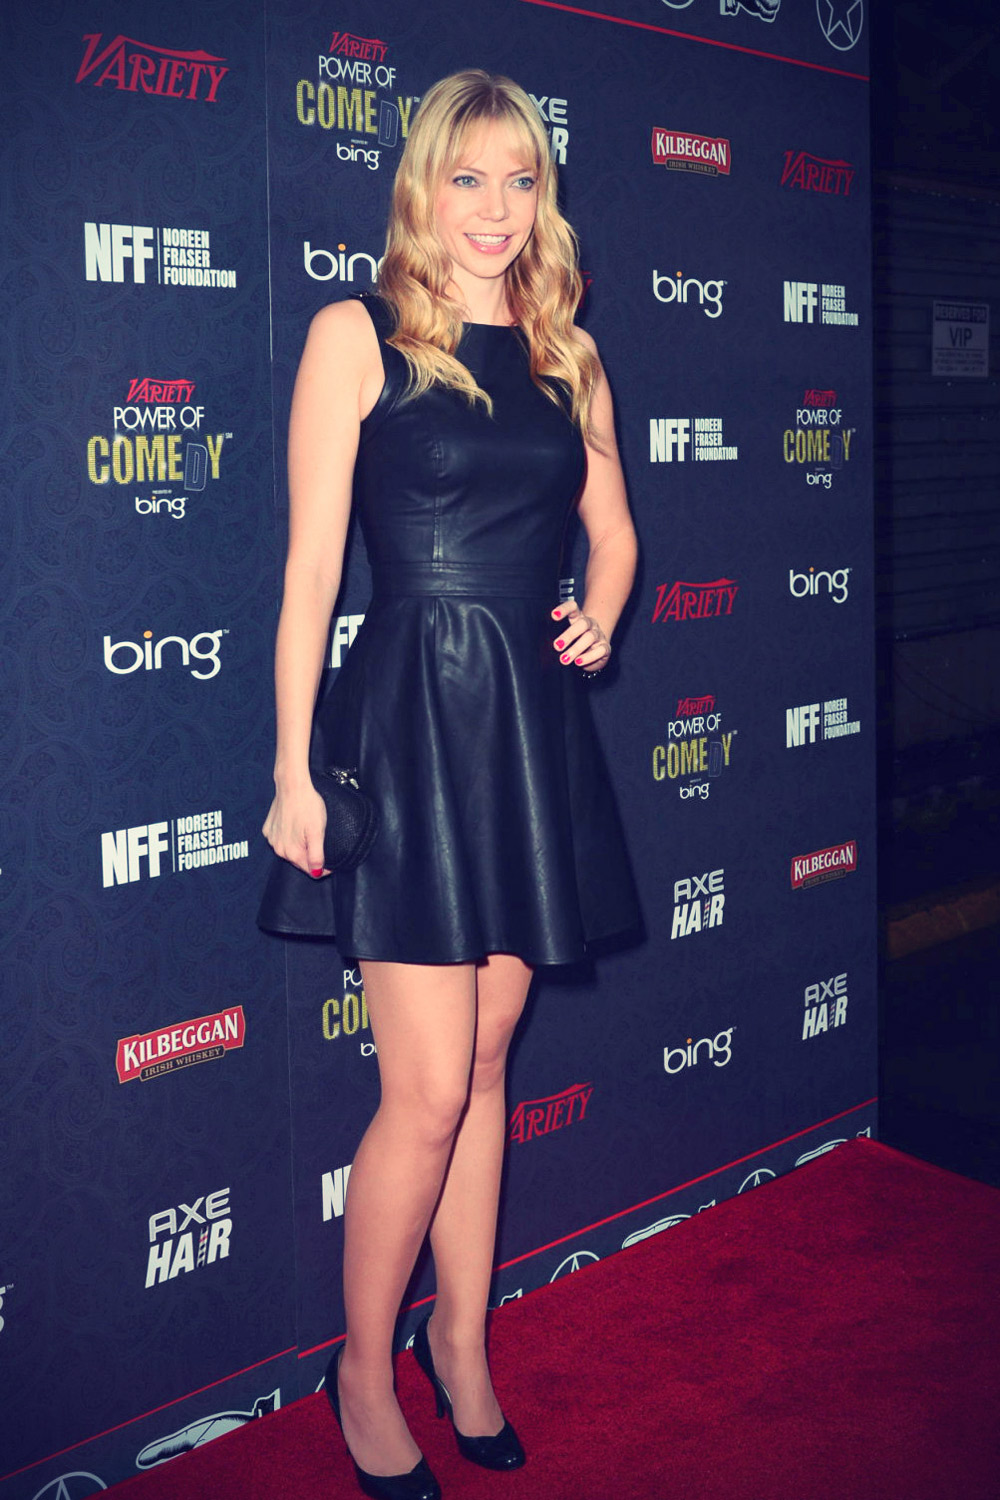 Riki Lindhome attends Variety's 3rd annual Power of Comedy event